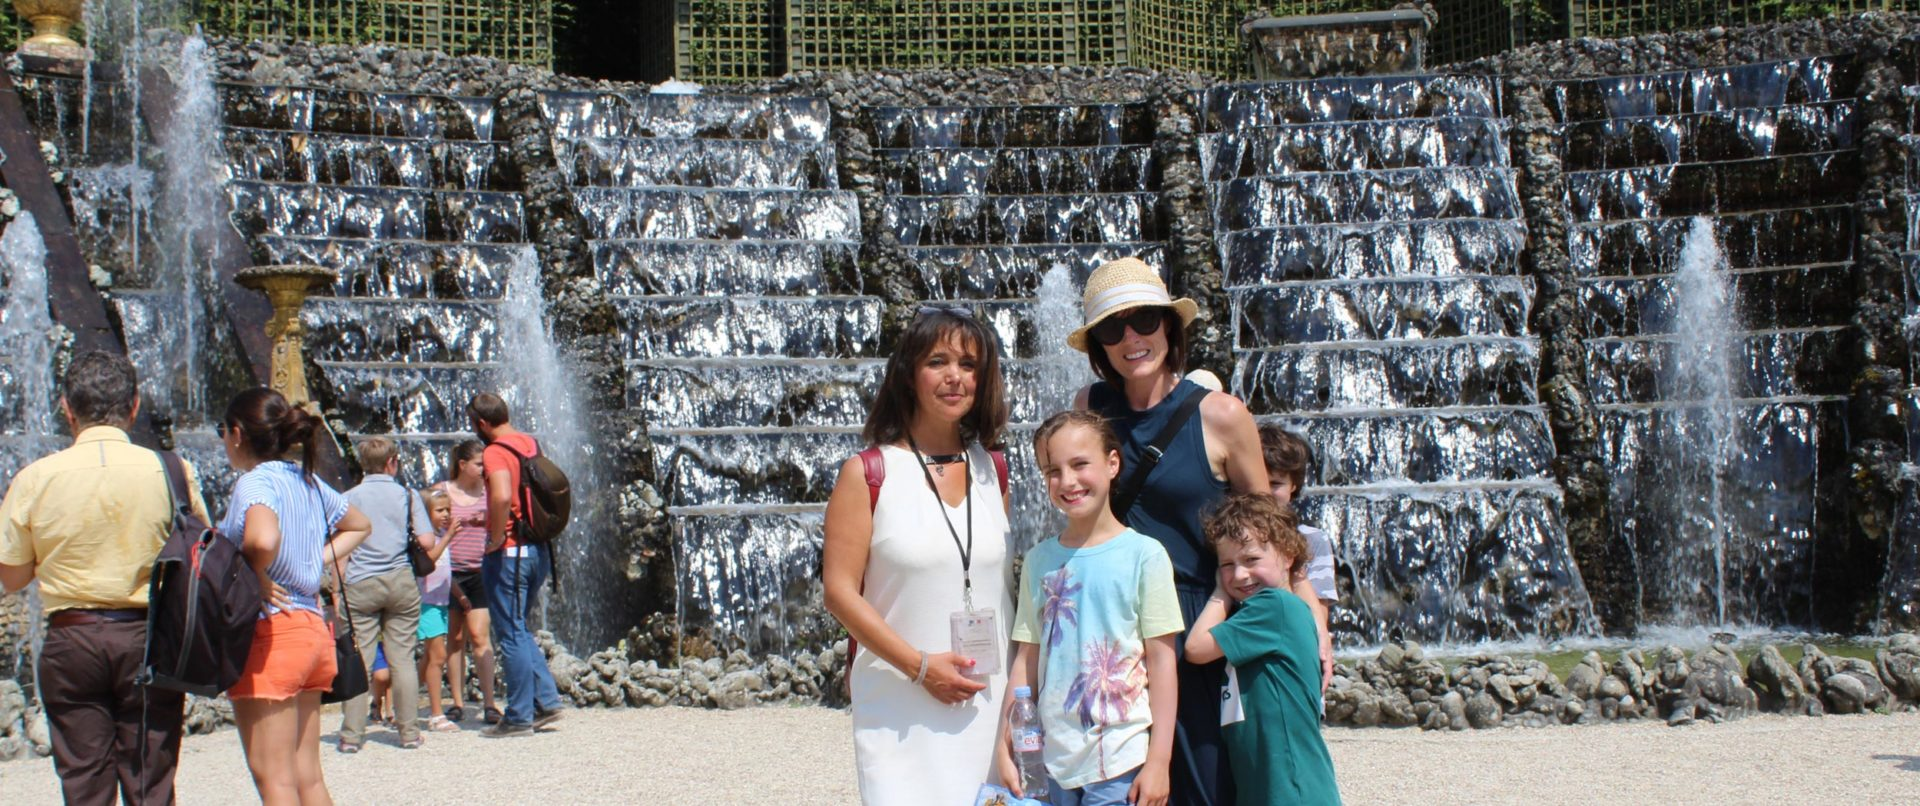 versailles-family-tour-private-guide-fountain-show